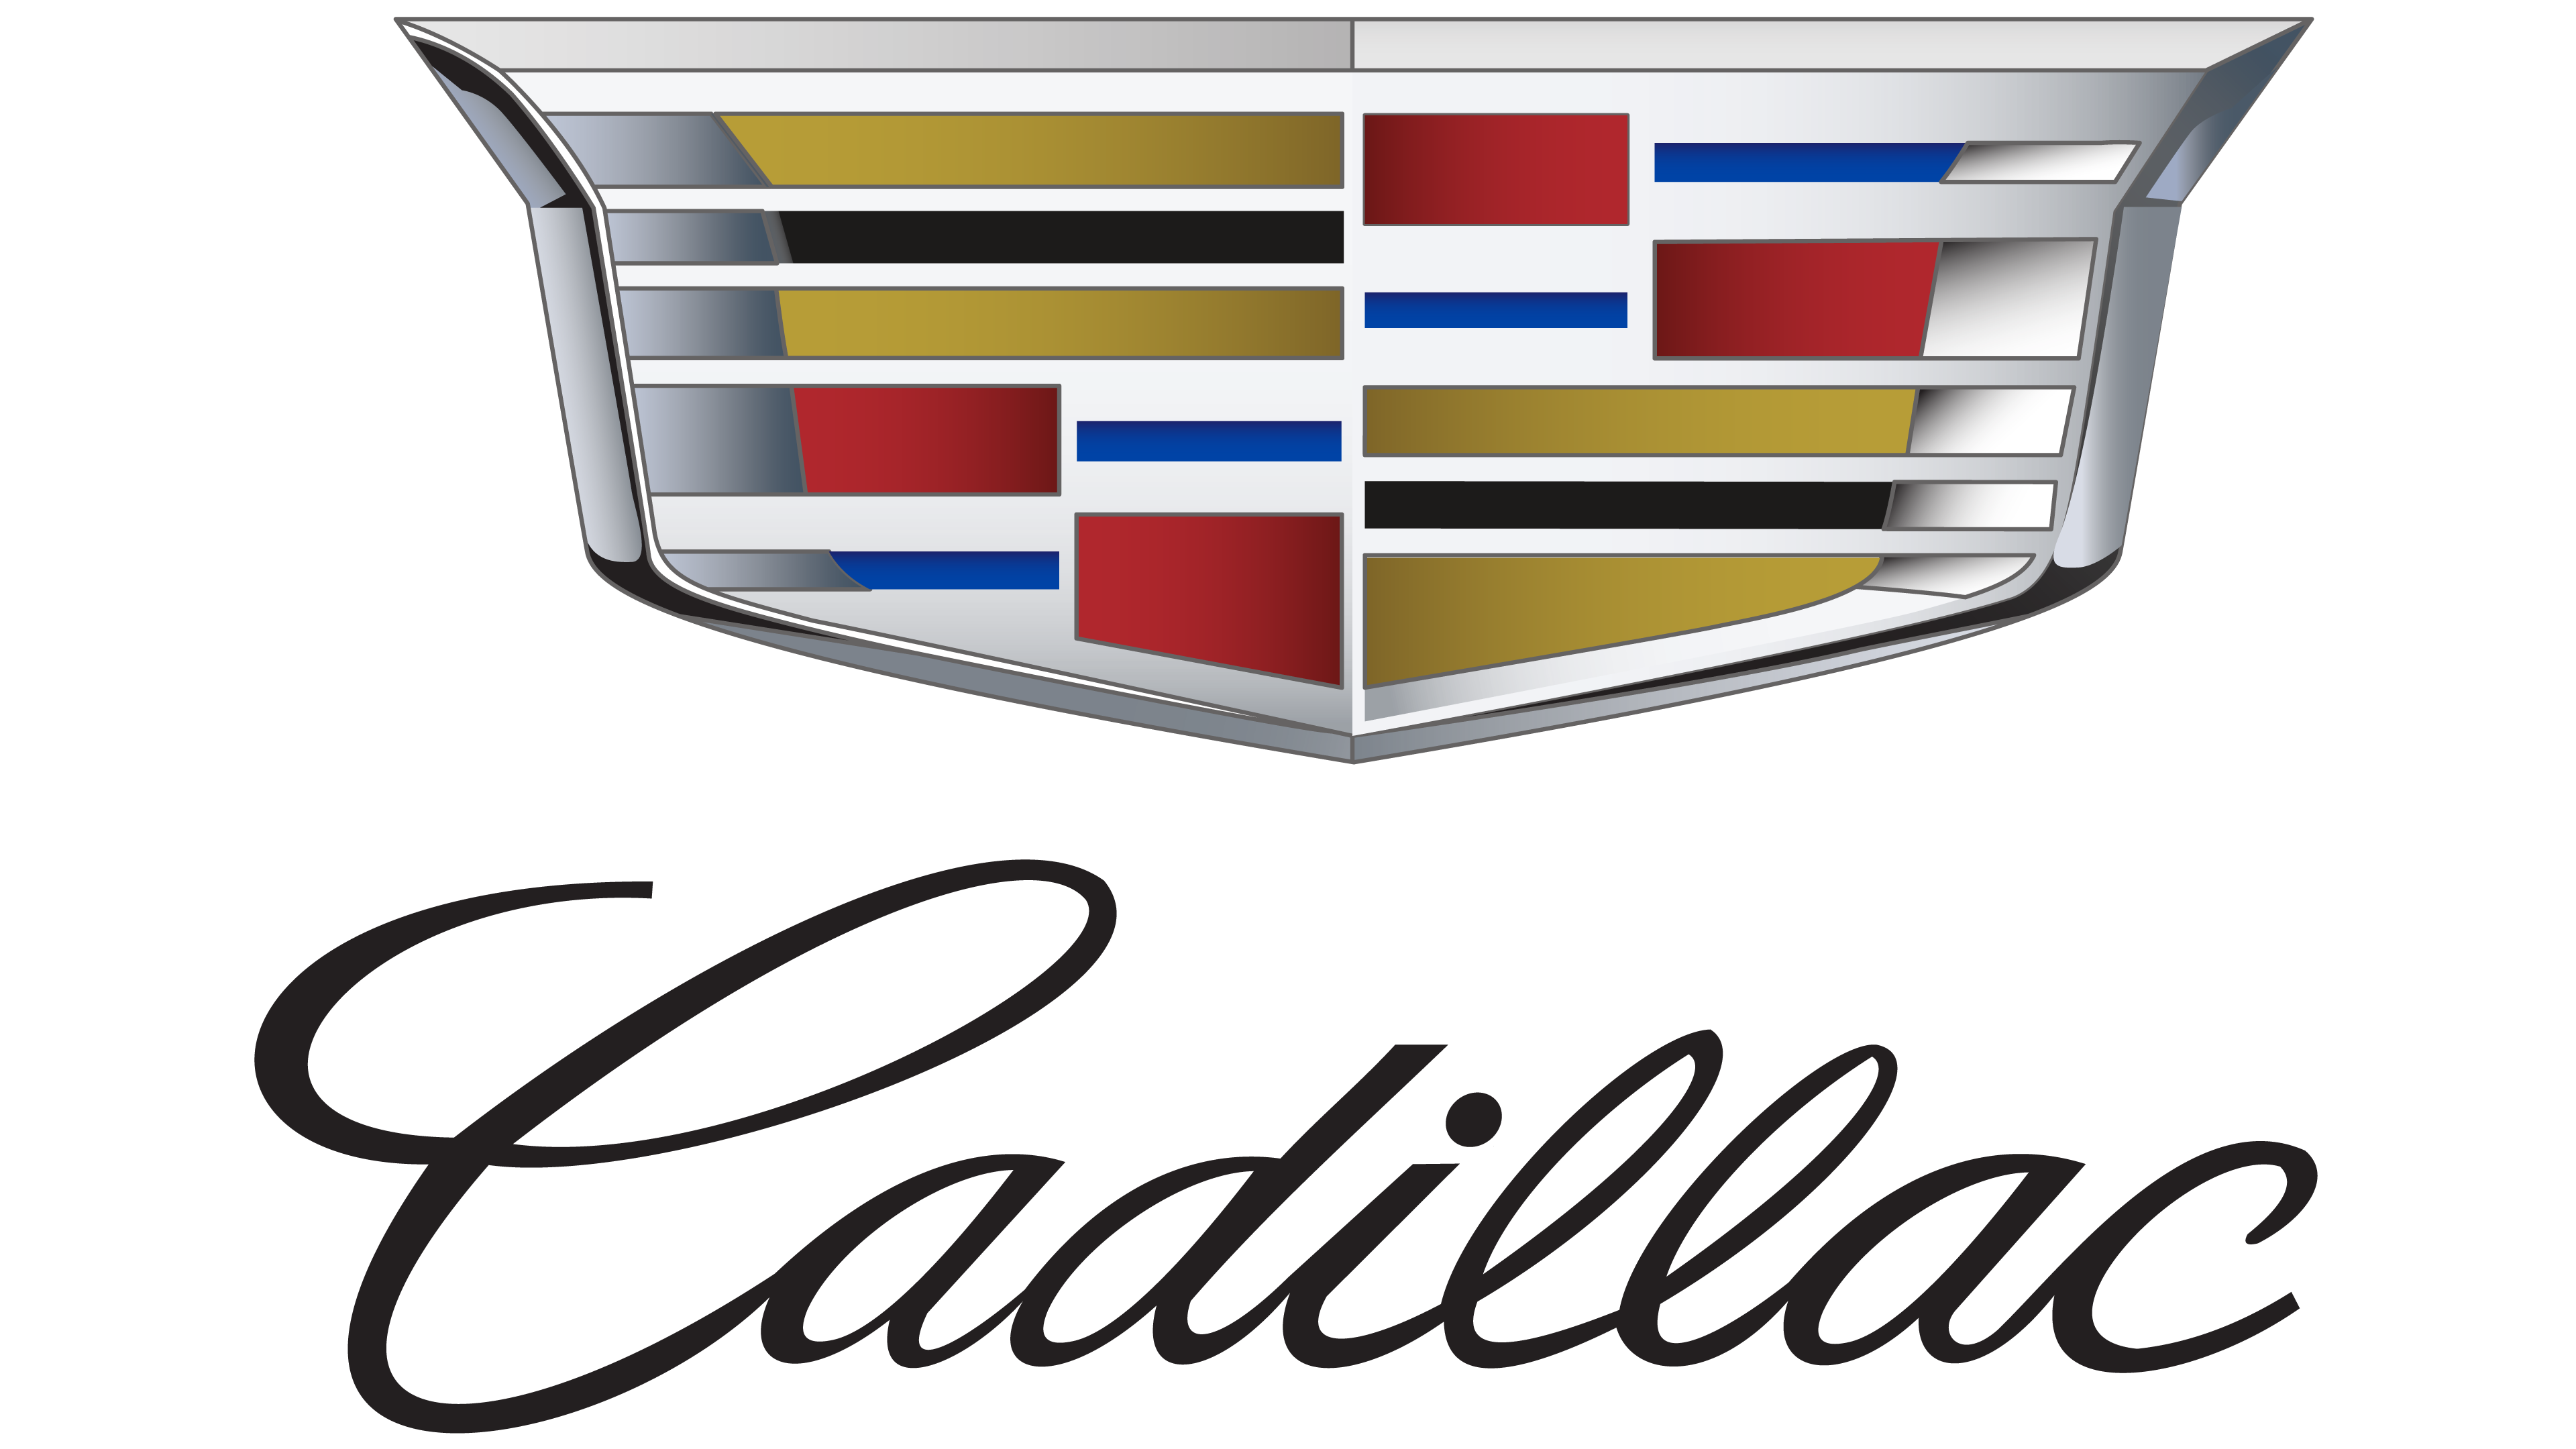 Cadillac Png Image Purepng Free Transparent Cc0 Png Image Library